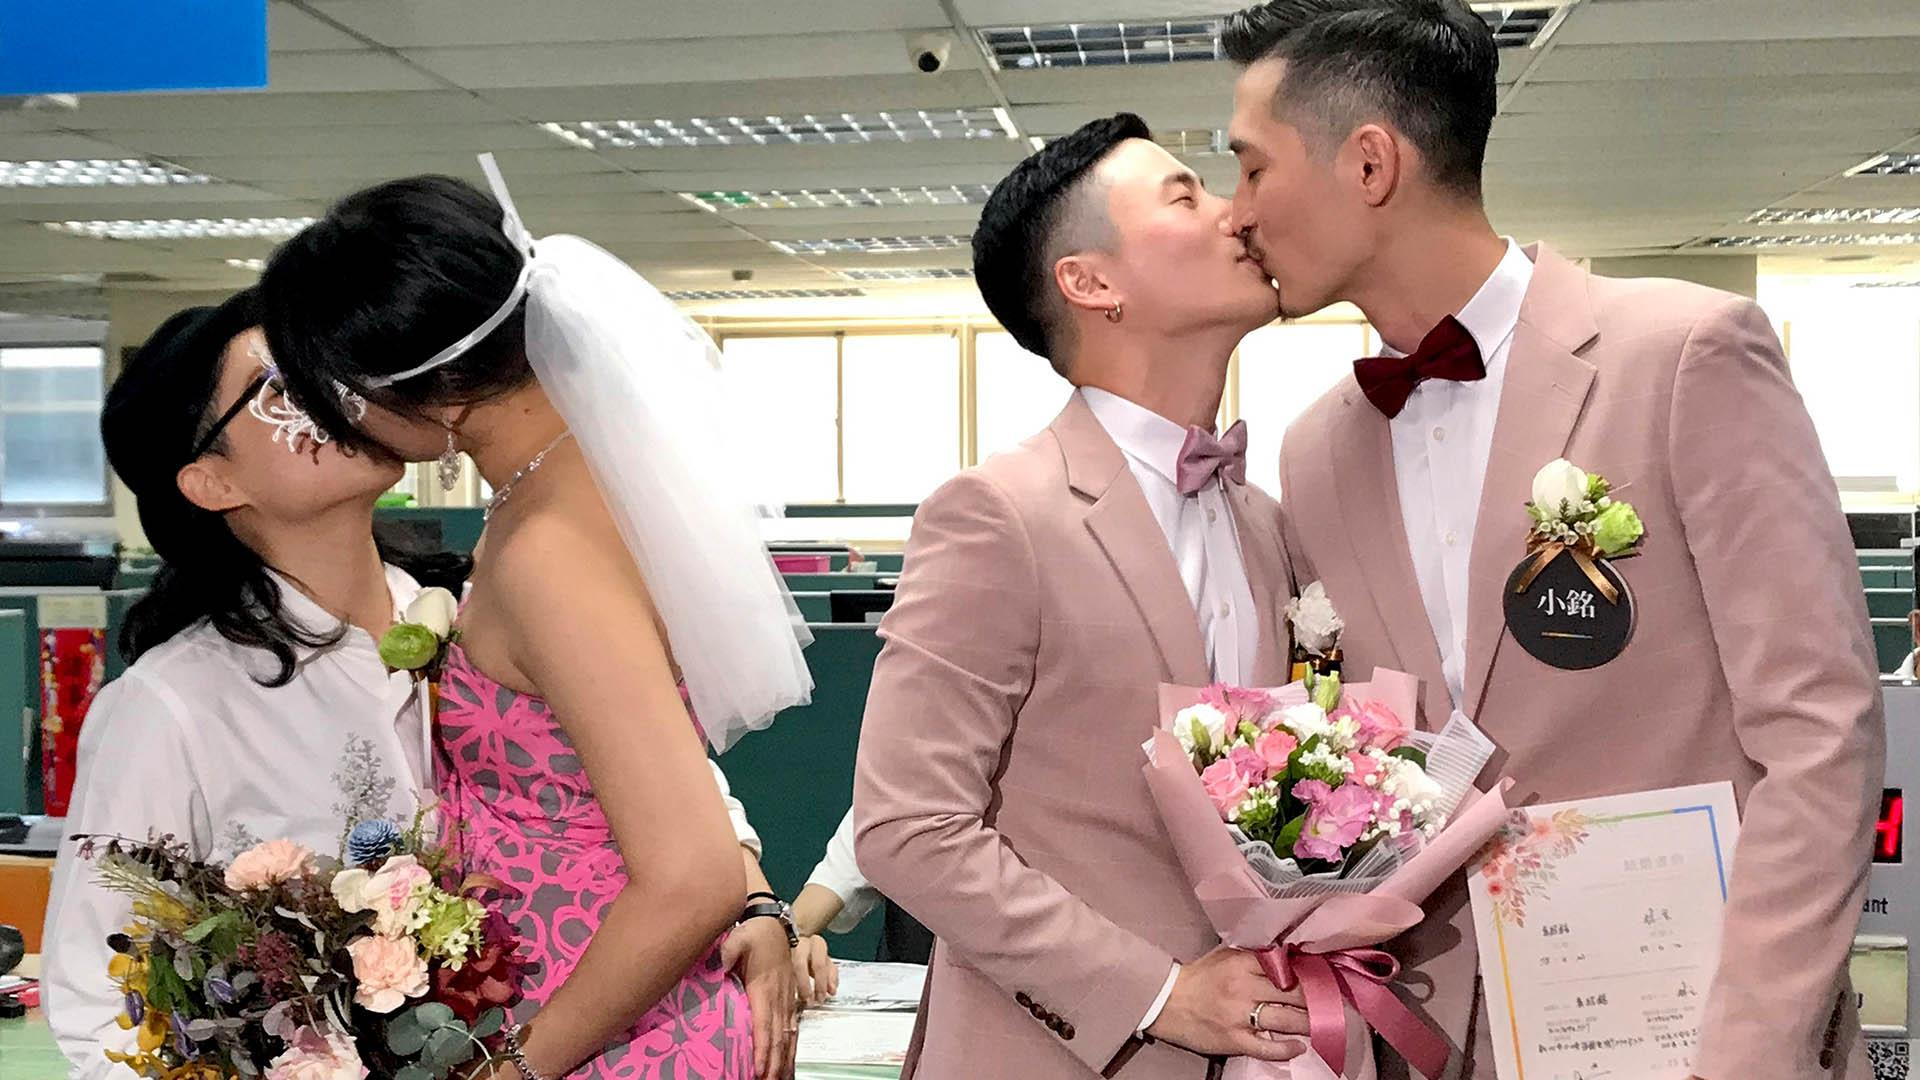 Same-sex couples marry in Taiwan